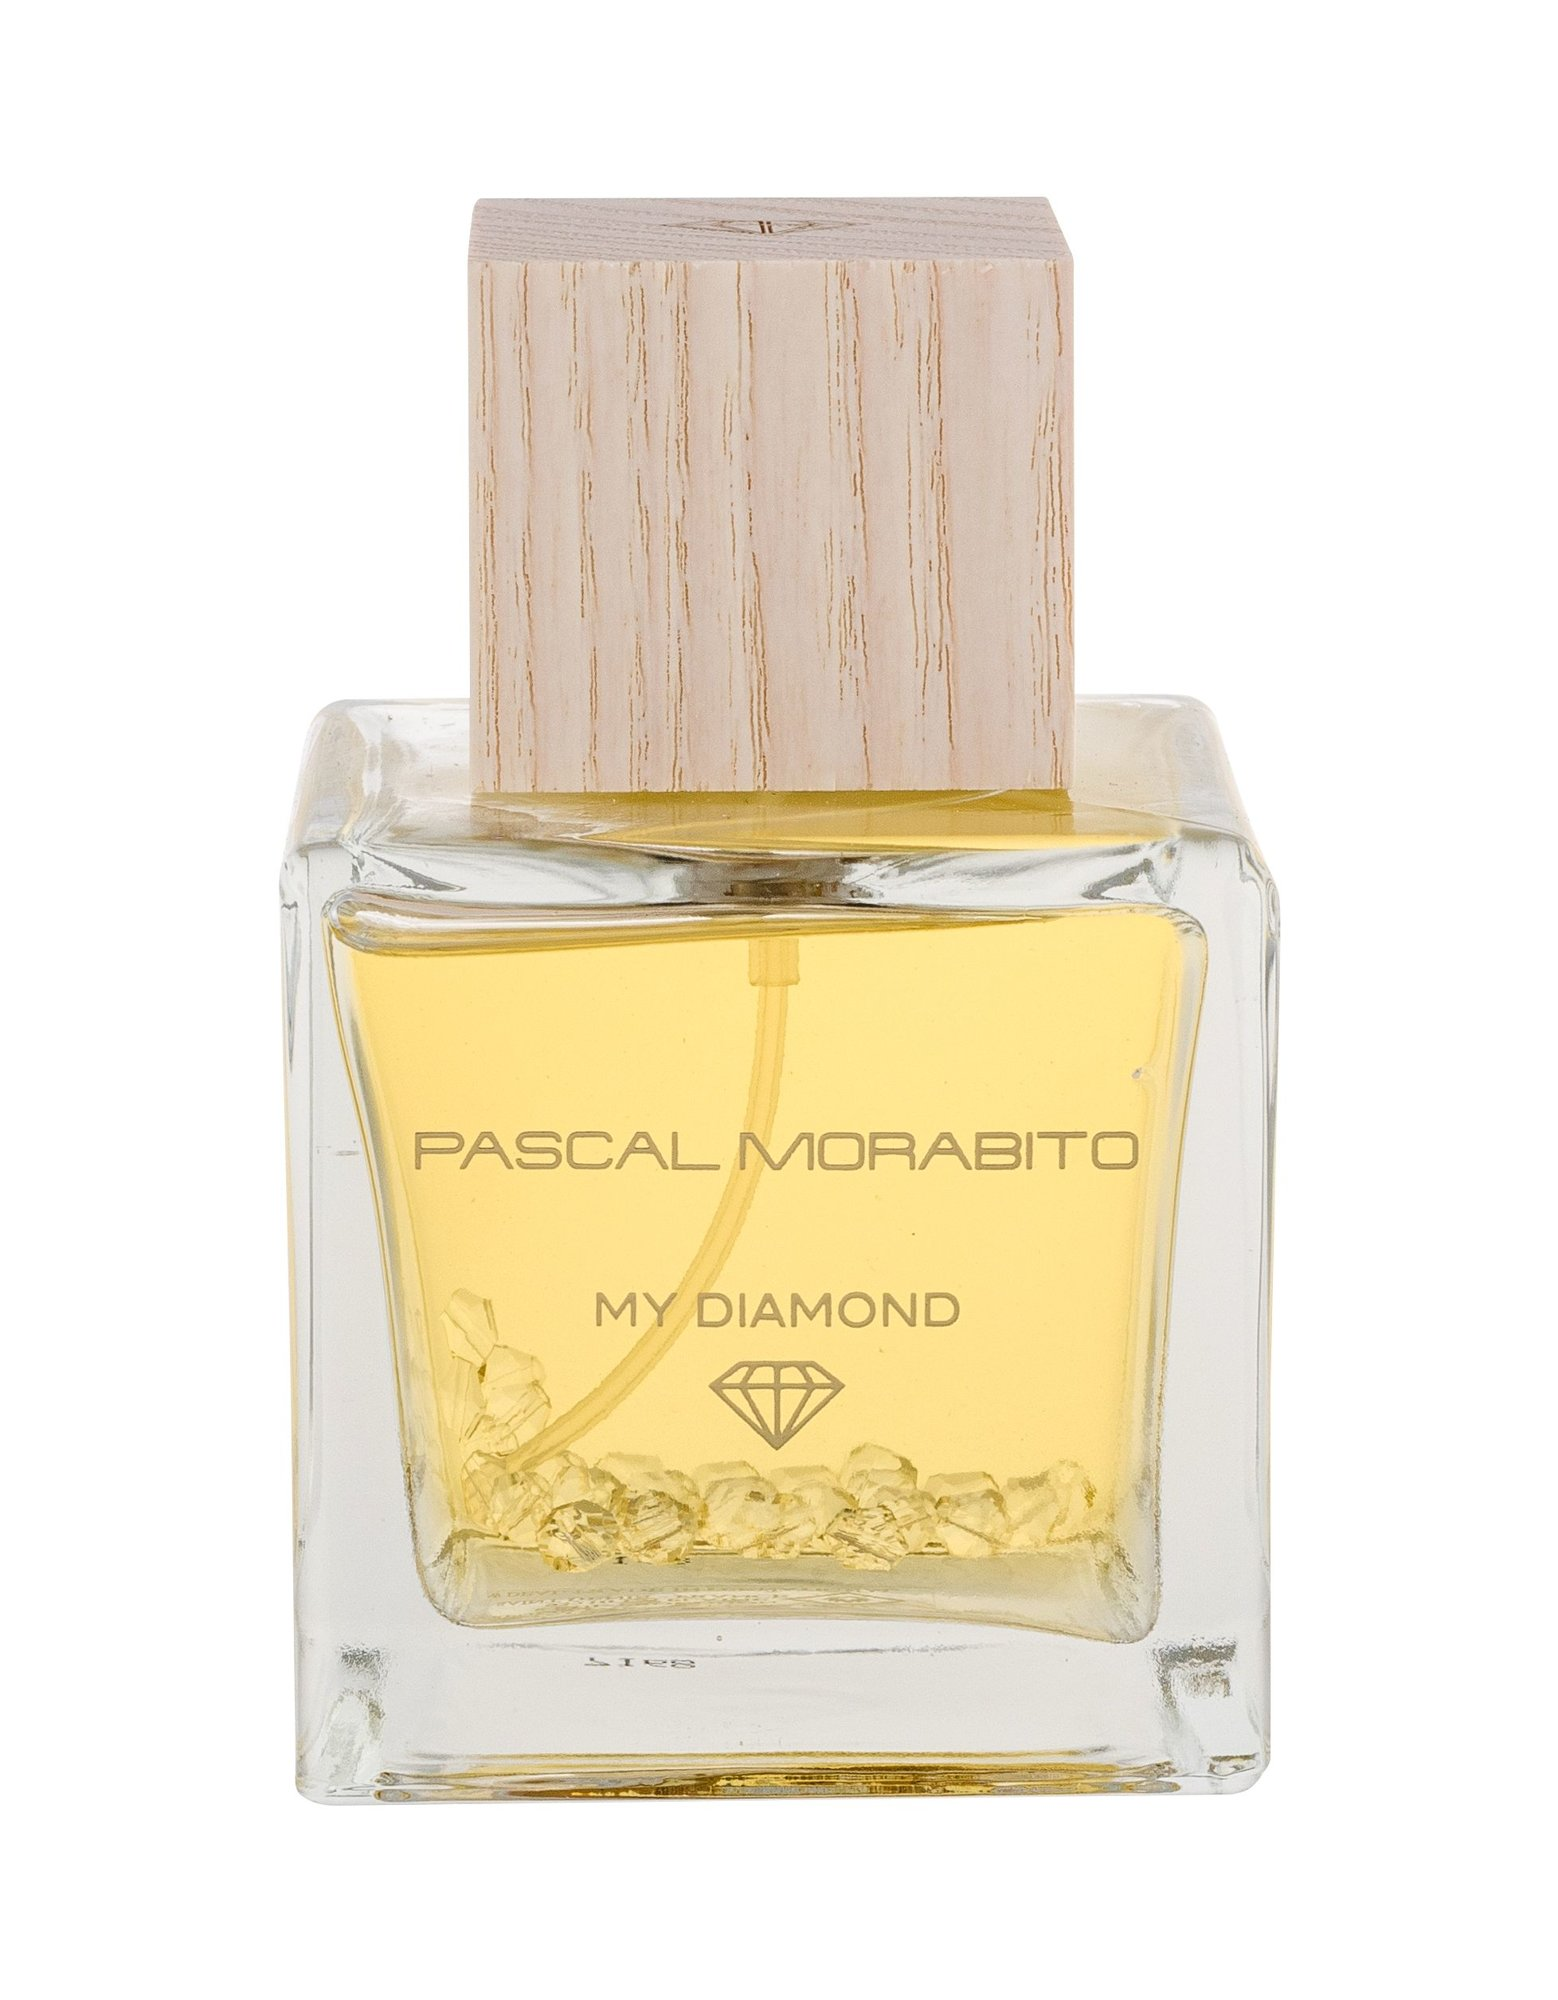 Pascal Morabito My Diamond Eau de Parfum 95ml